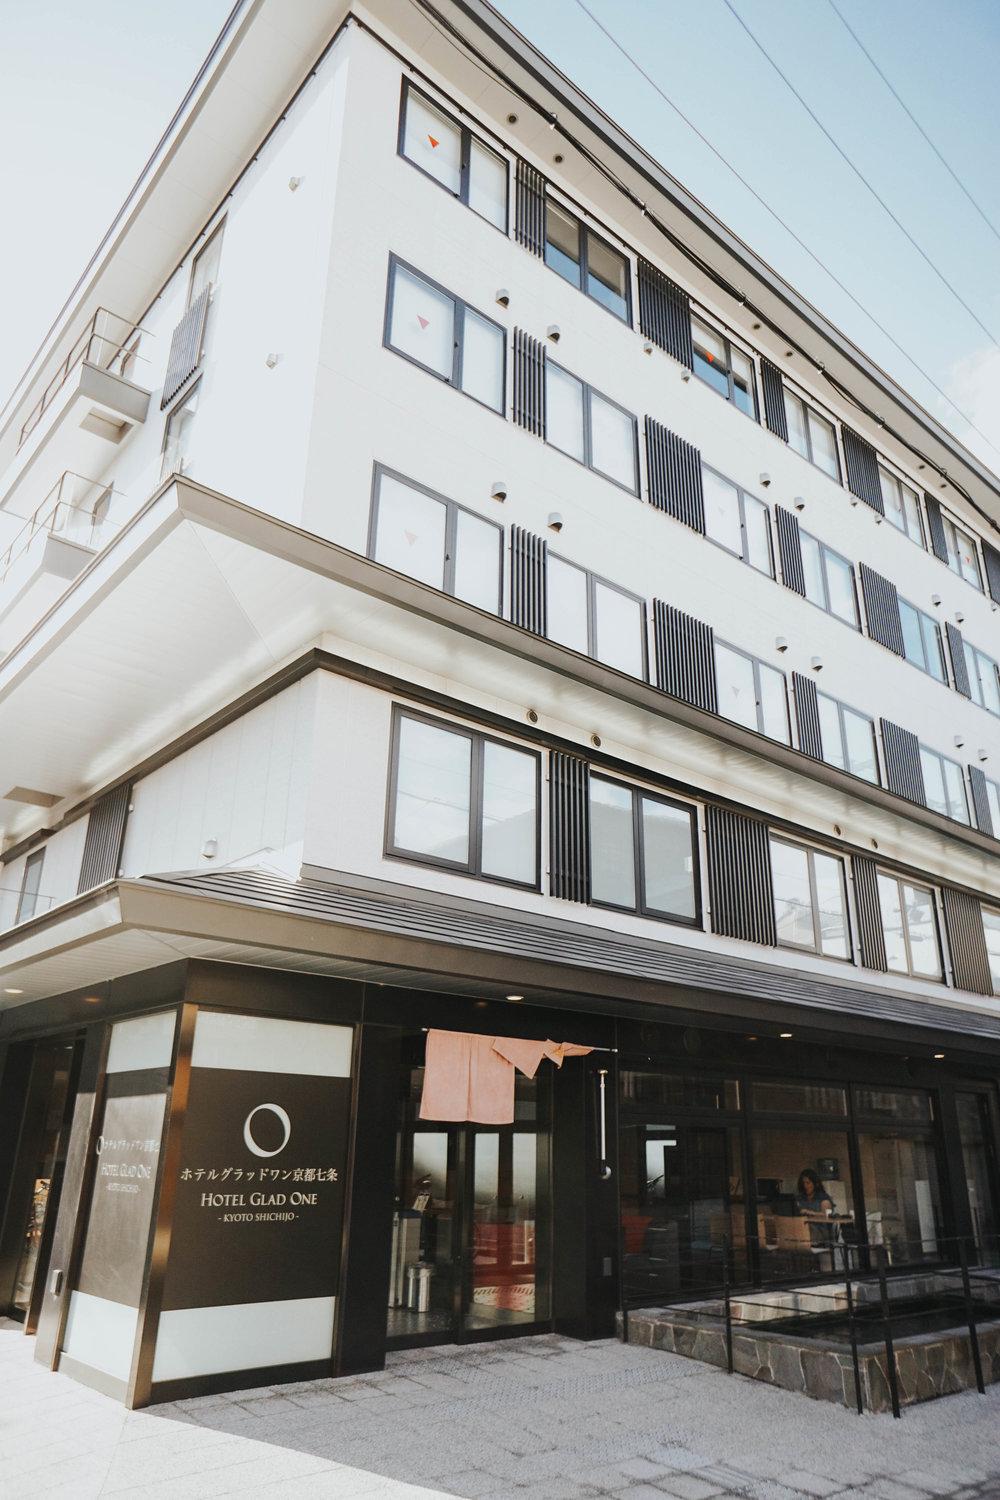 KyotoHotel GLad one -